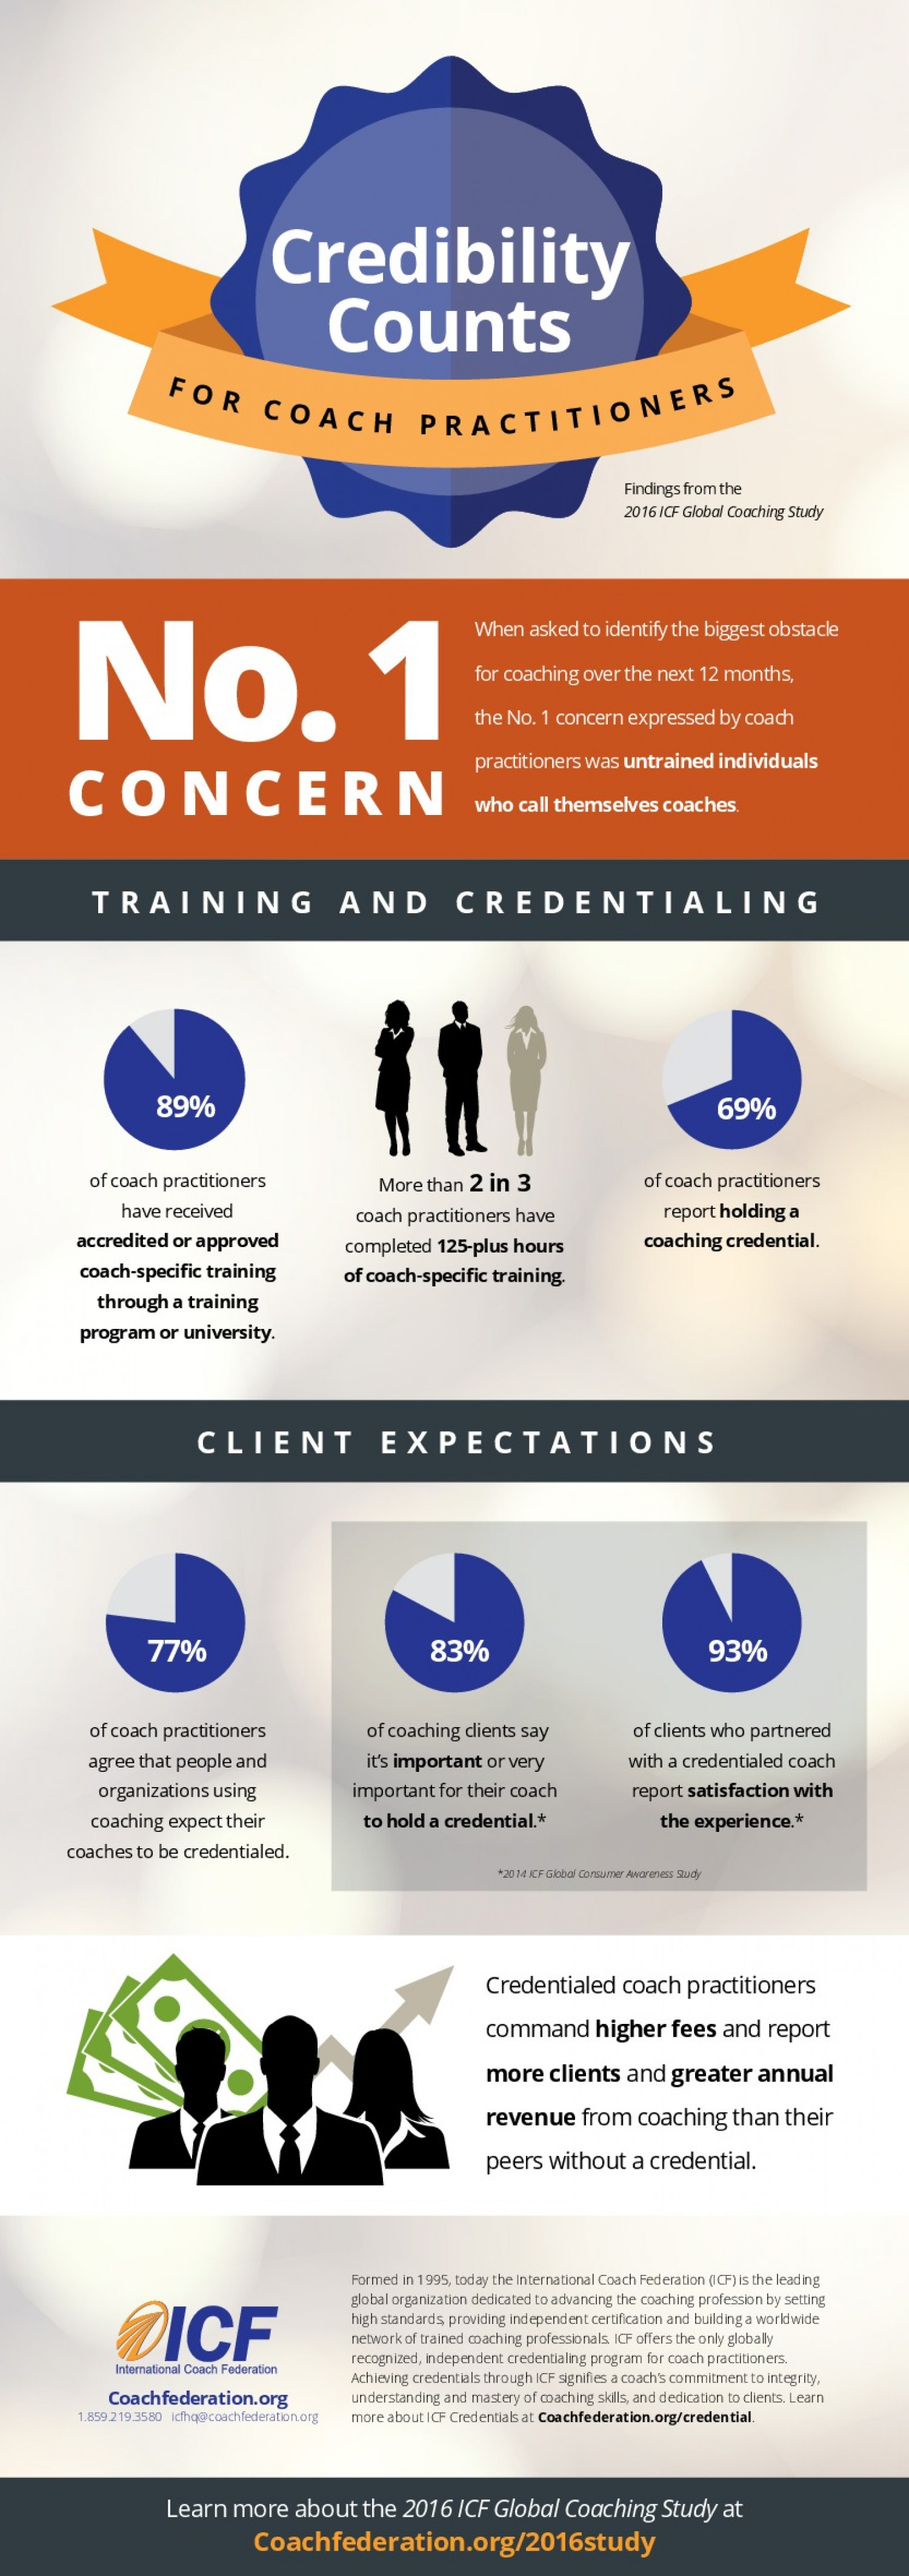 Credibility Counts for Coach Practitioners Infographic